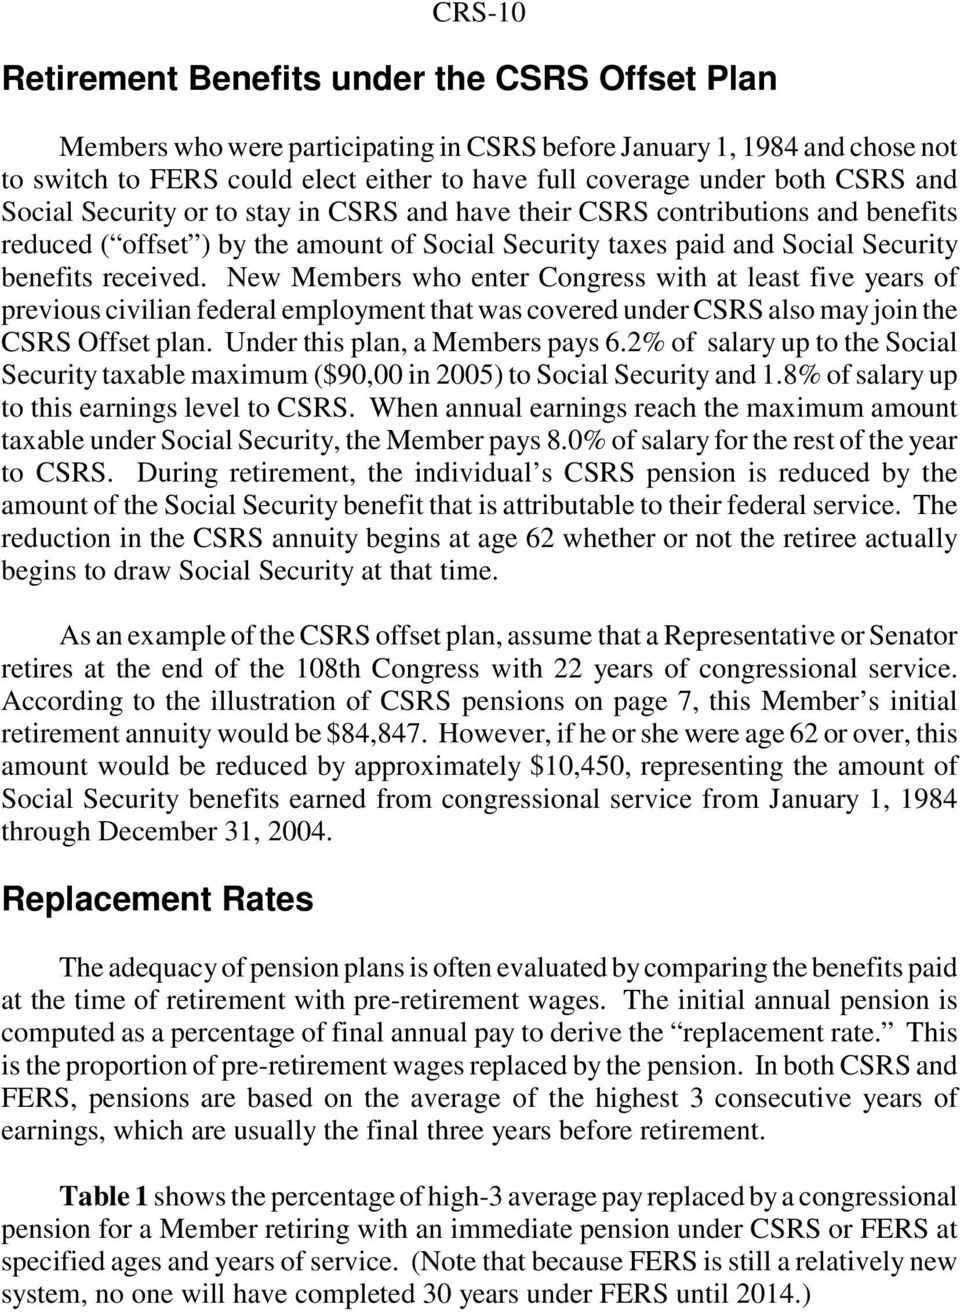 New Members who enter Congress with at least five years of previous civilian federal employment that was covered under CSRS also may join the CSRS Offset plan. Under this plan, a Members pays 6.